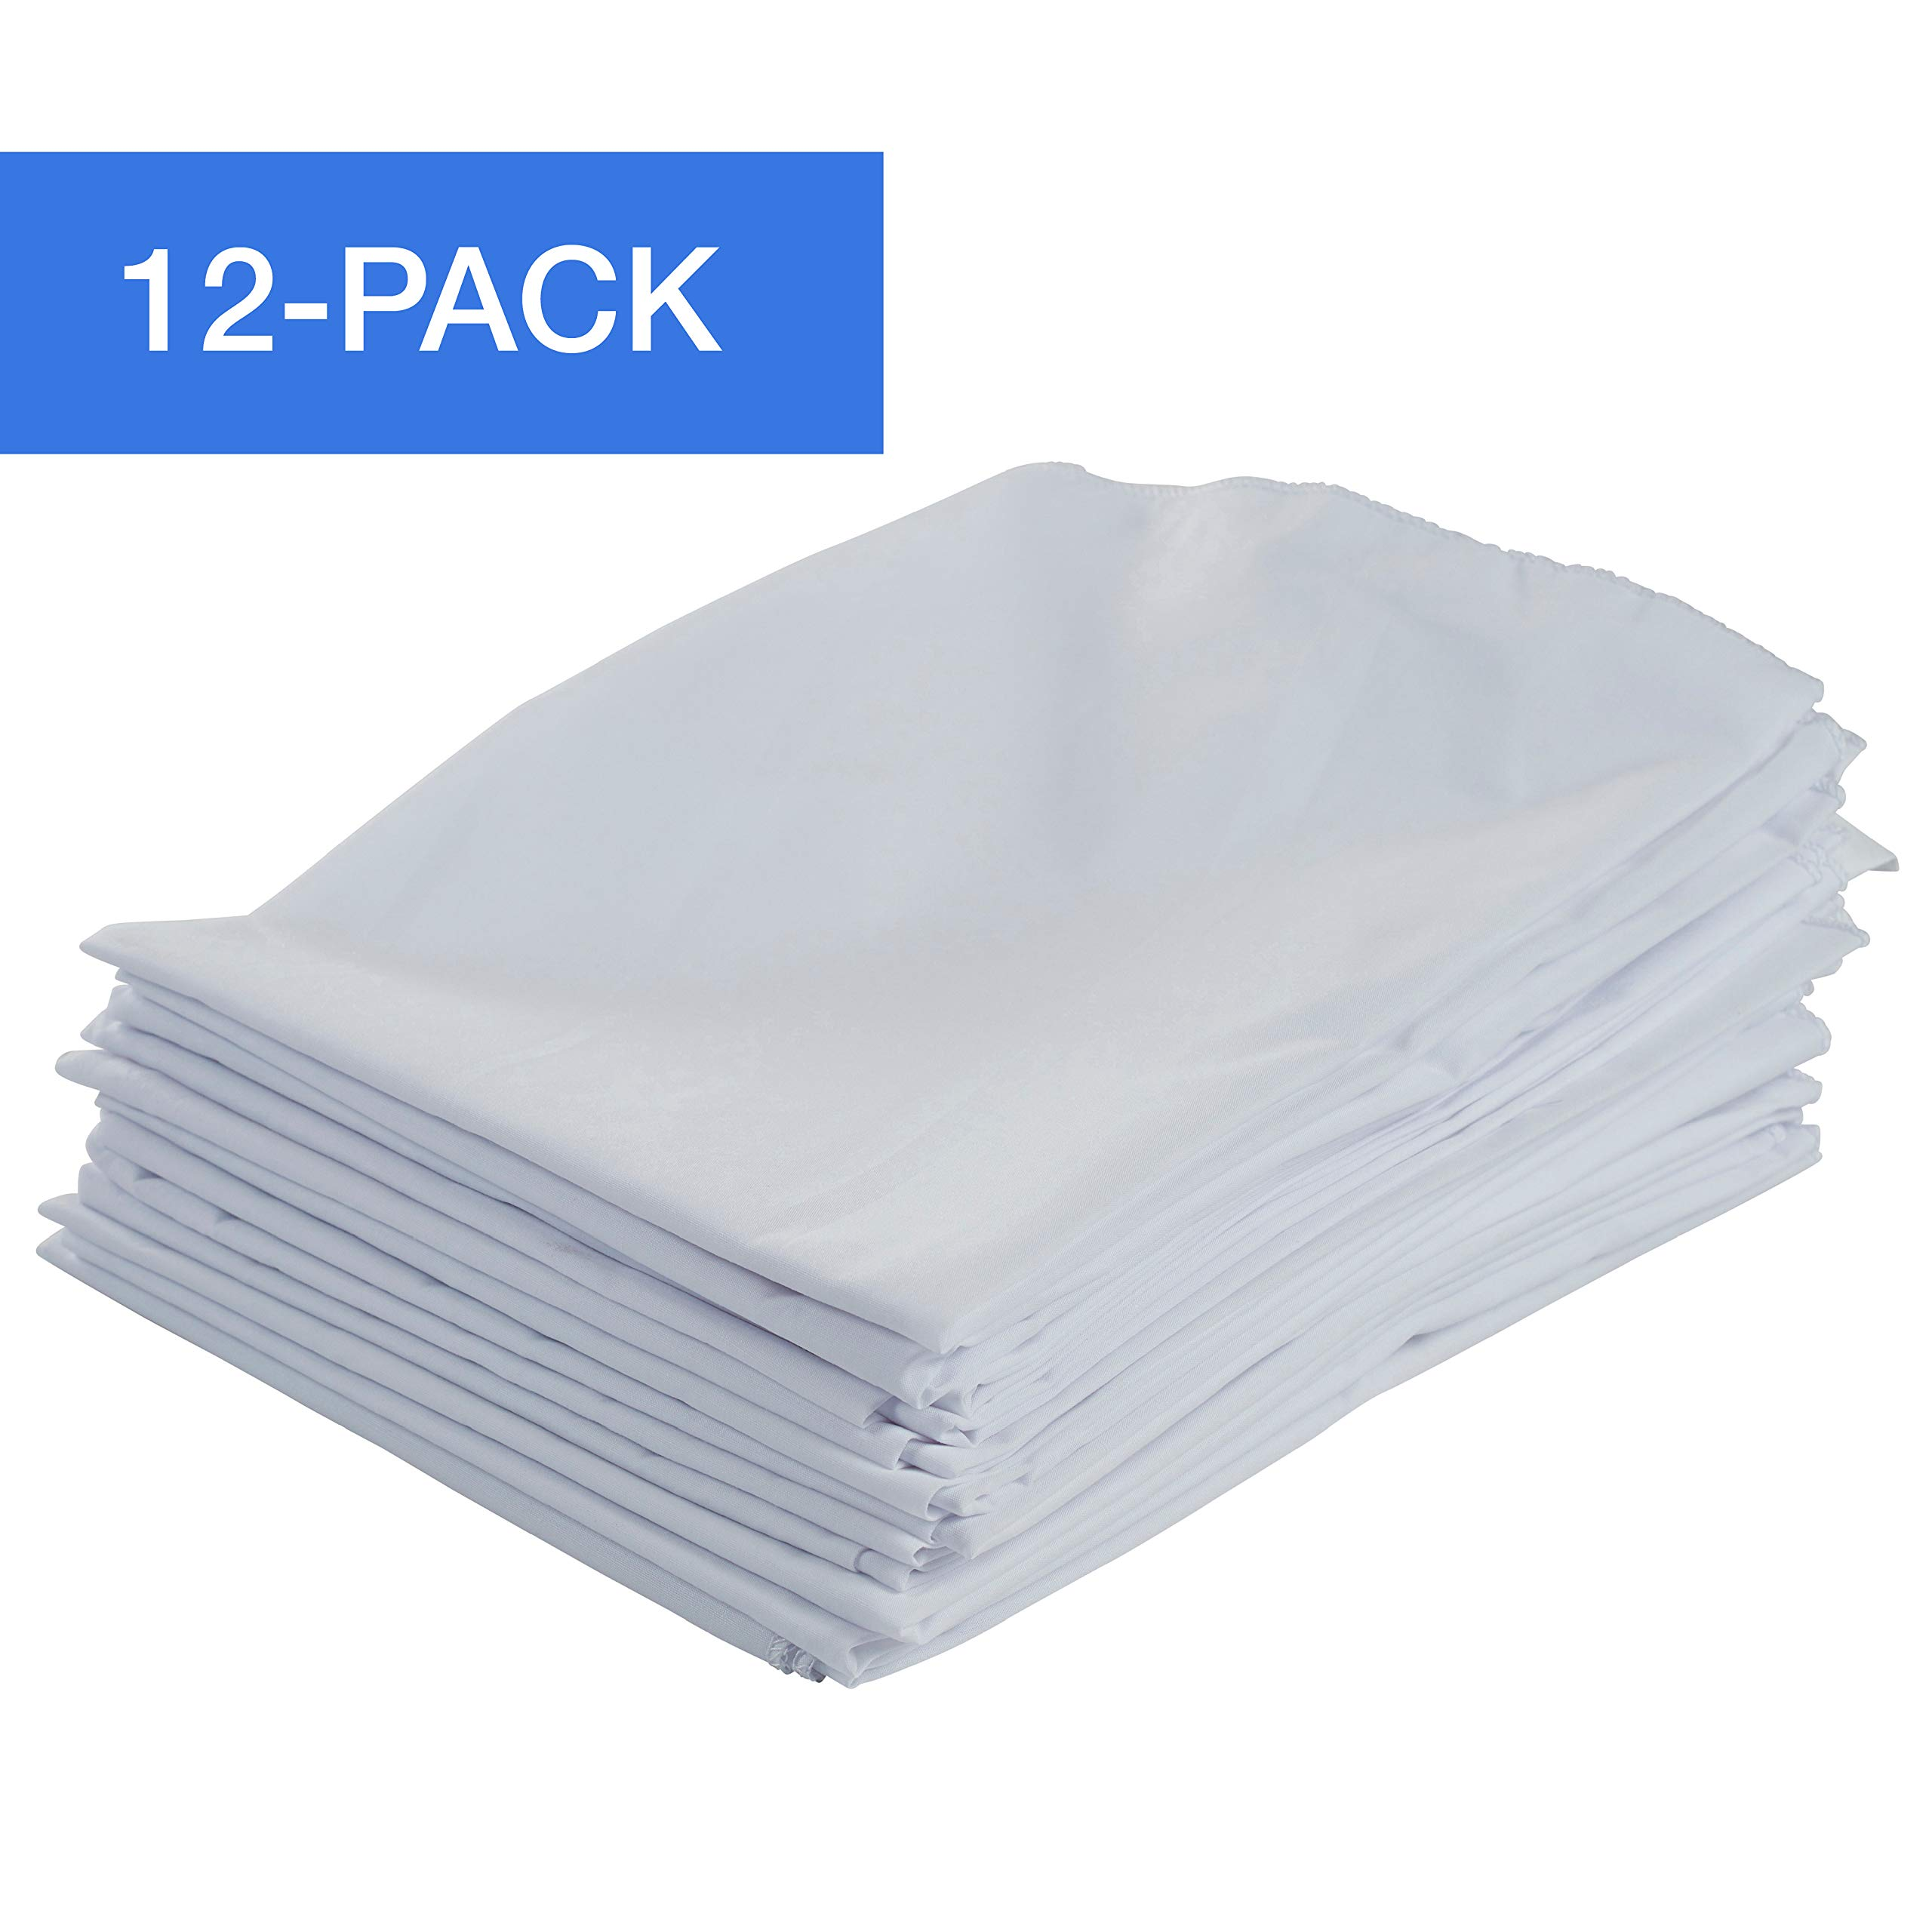 ECR4Kids 12-Pack Standard Cot Sheet with Elastic Straps, Standard Size Daycare and Preschool Cot Sheets for Rest Time, 50.5'' x 21.75'' - White by ECR4Kids